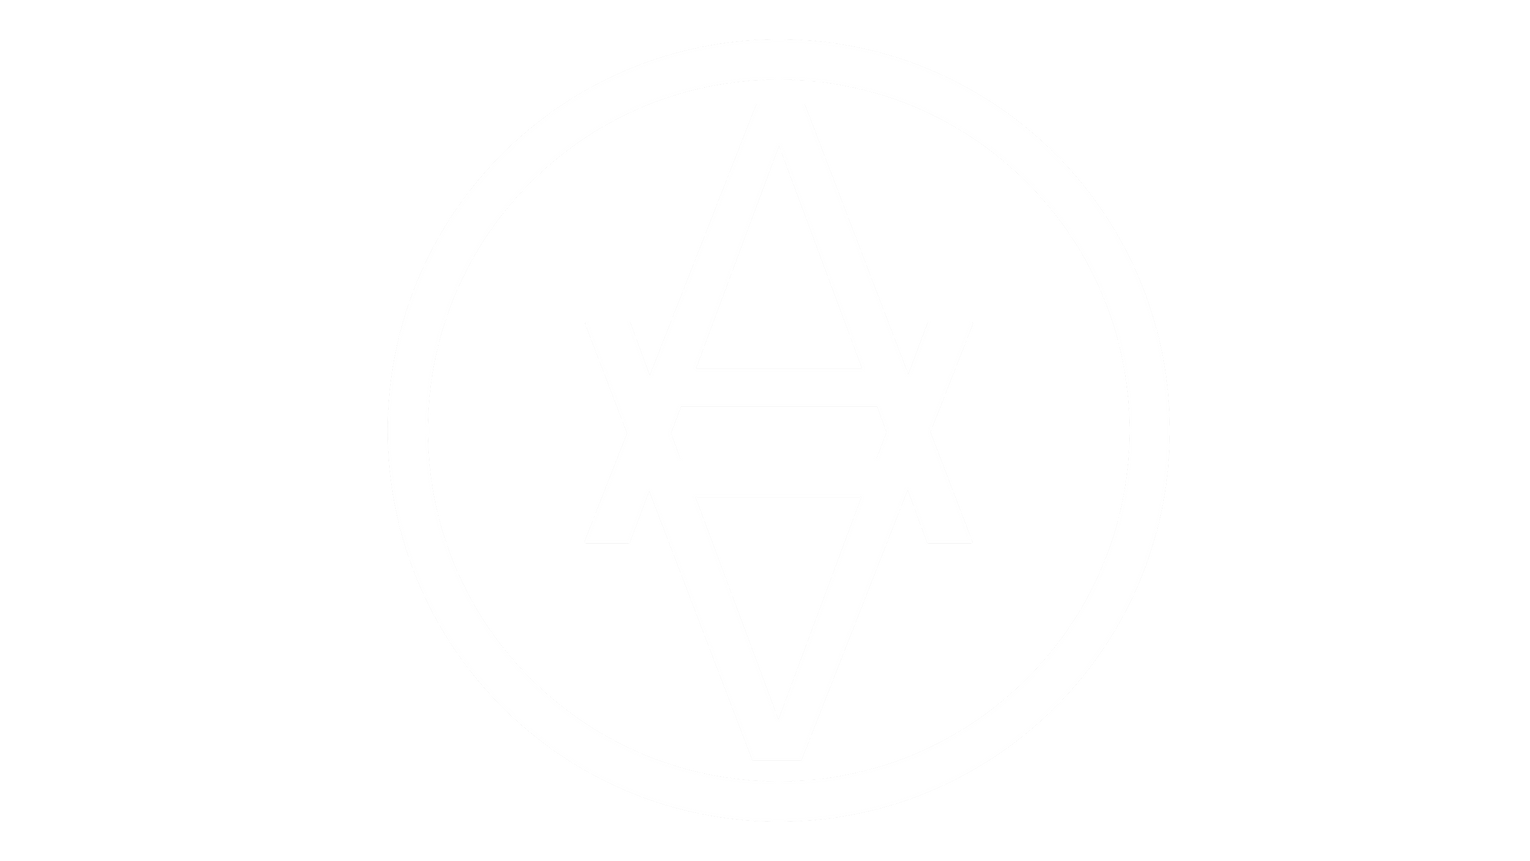 LOGO_Mein_AA-01_edited.png